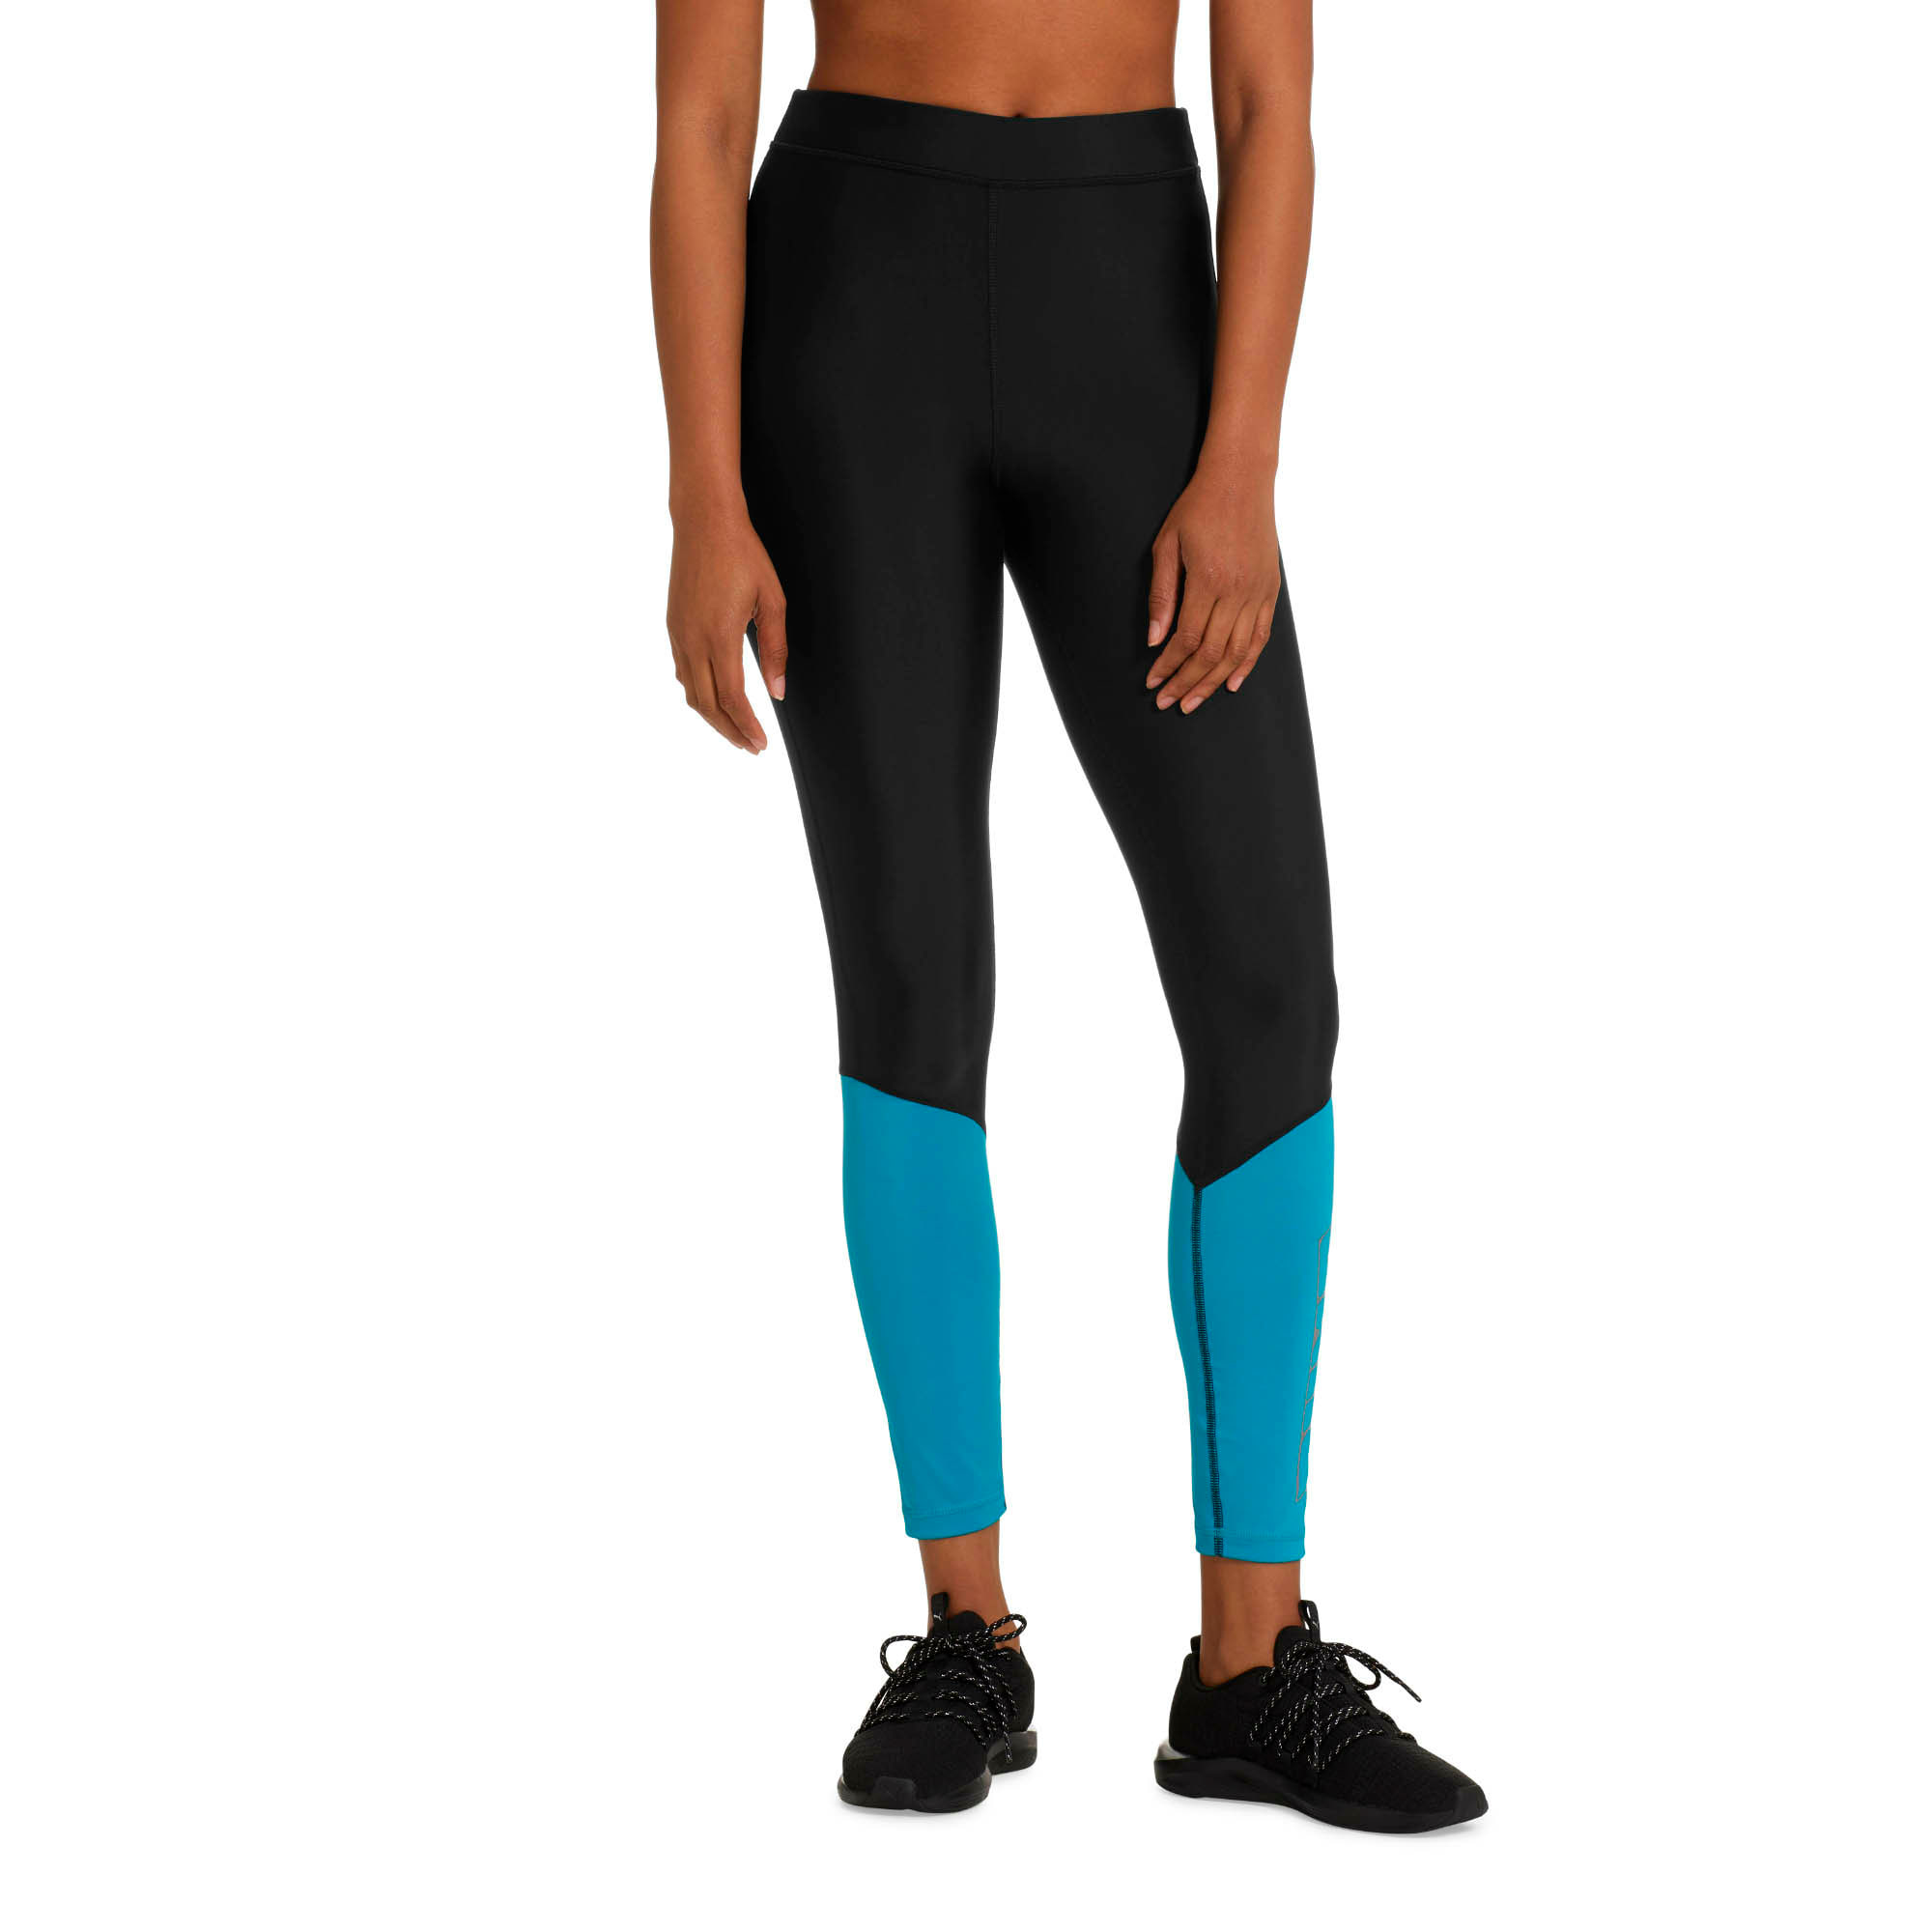 Thumbnail 1 of Aire Women's 7/8 Leggings, Puma Black-Caribbean Sea, medium